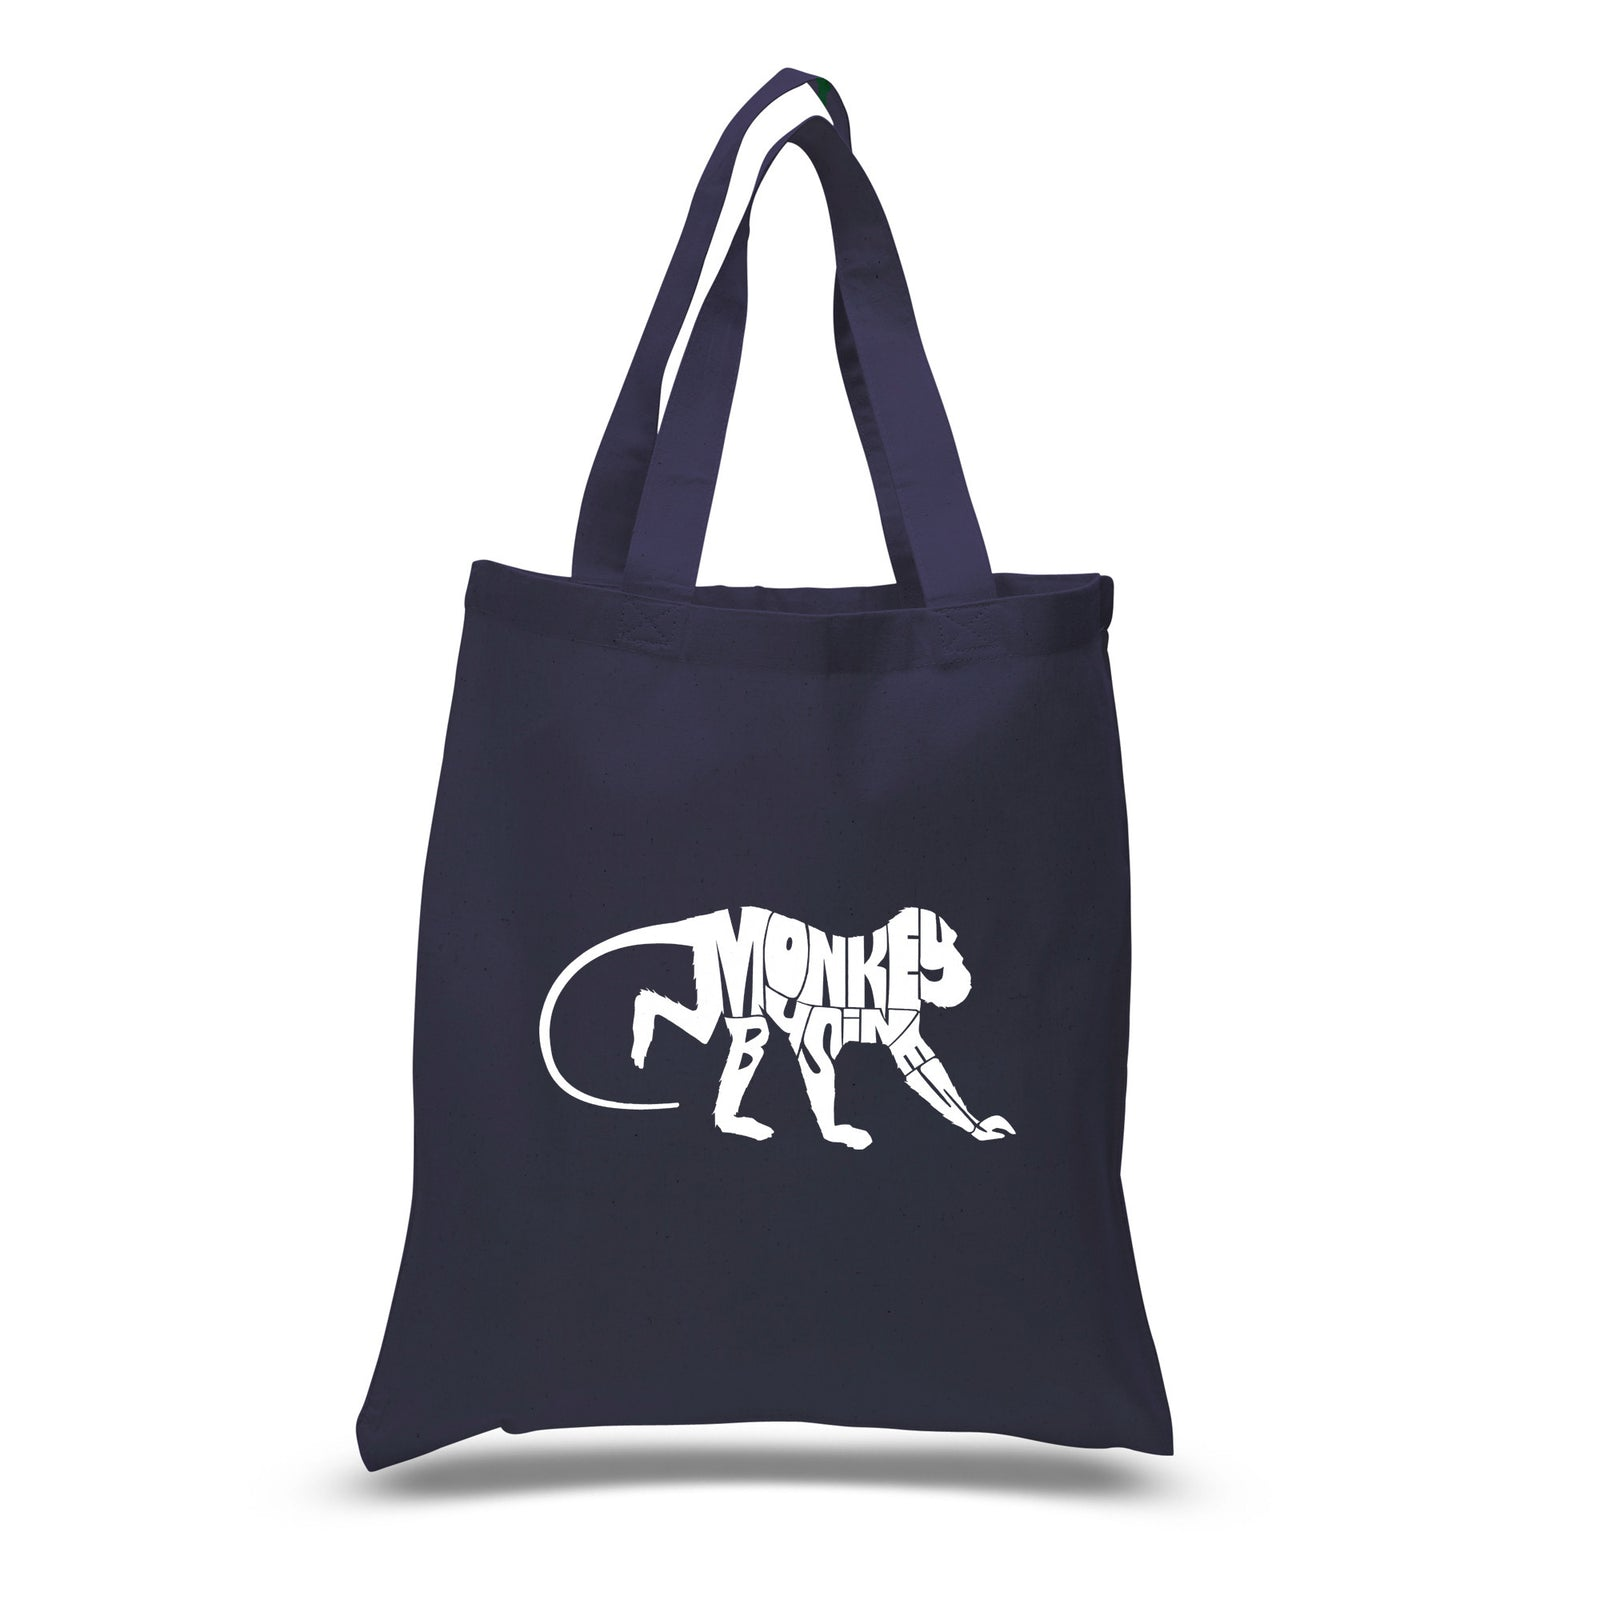 Small Tote Bag - Monkey Business